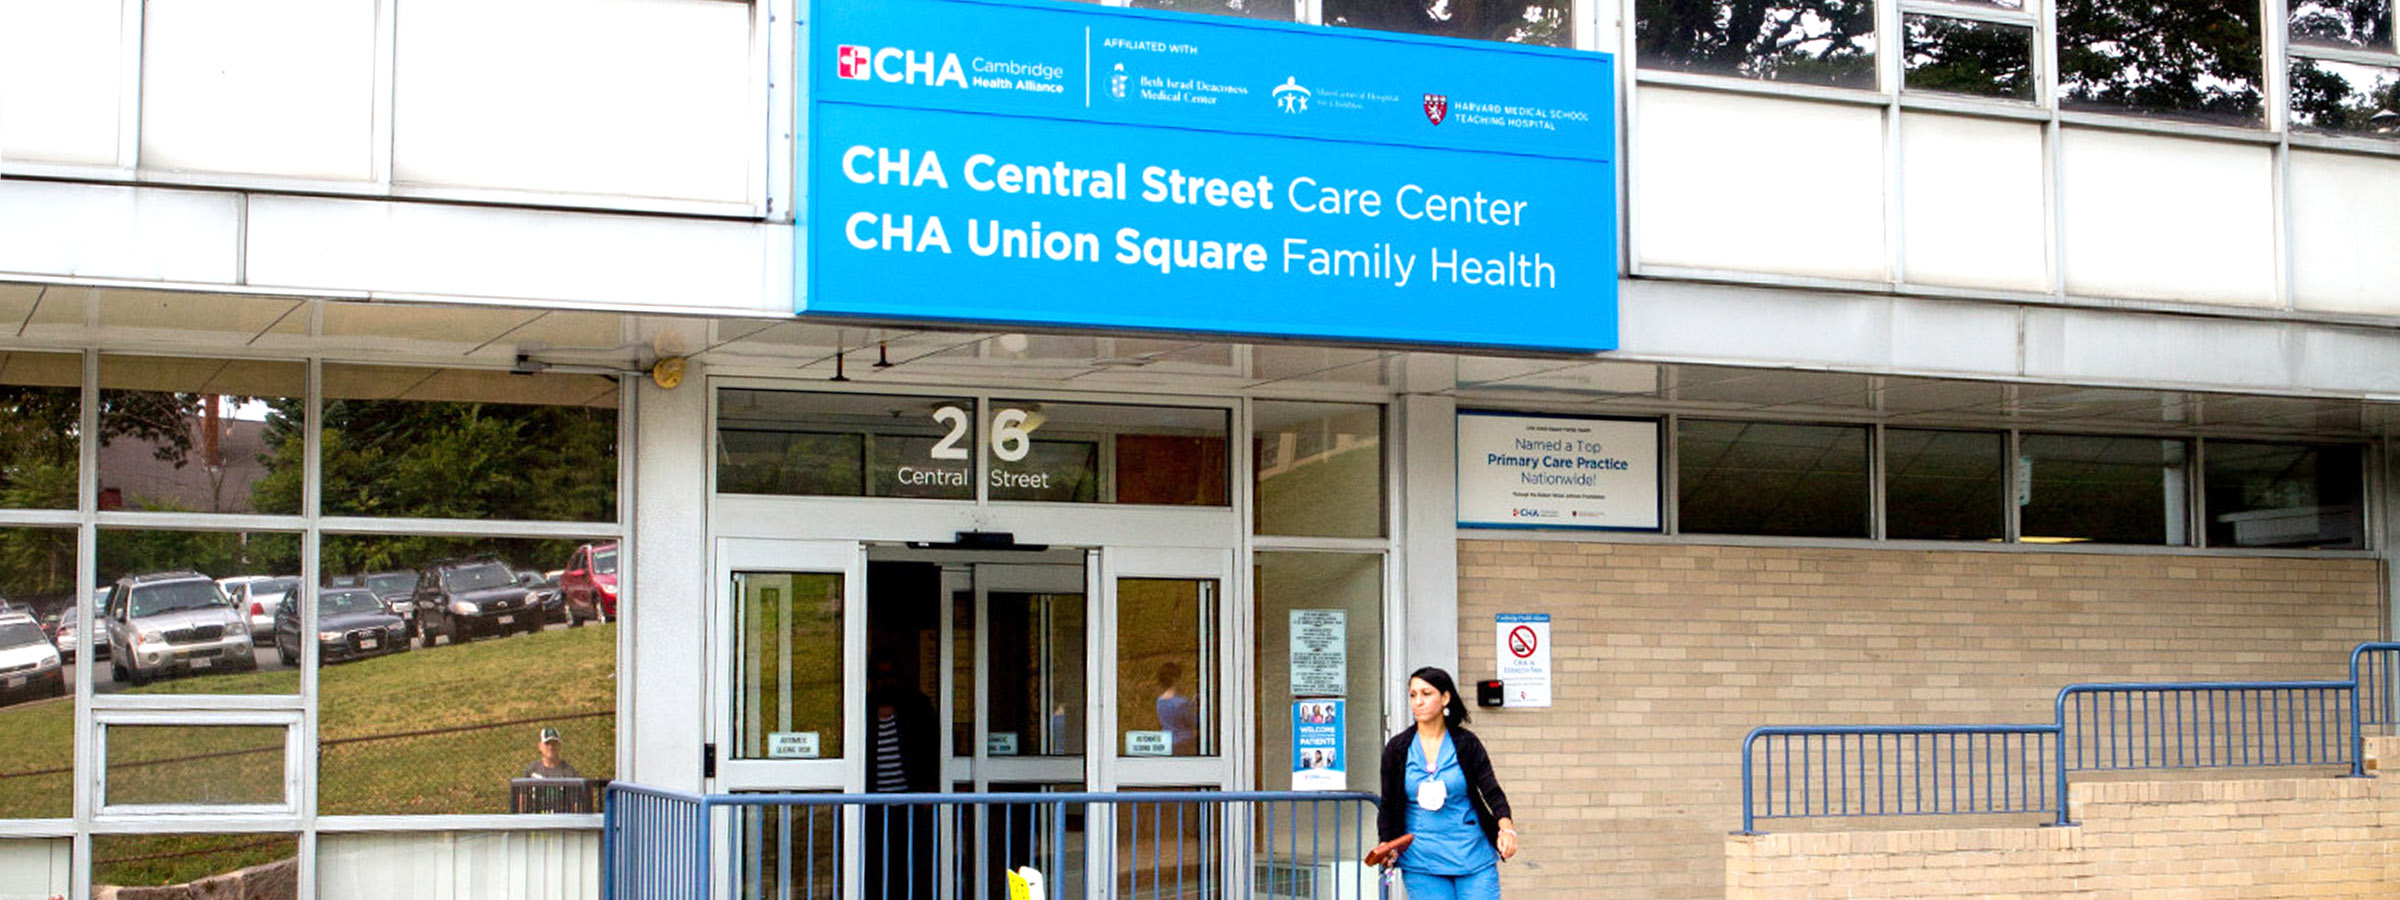 photo of nitzali in front of CHA Union Square